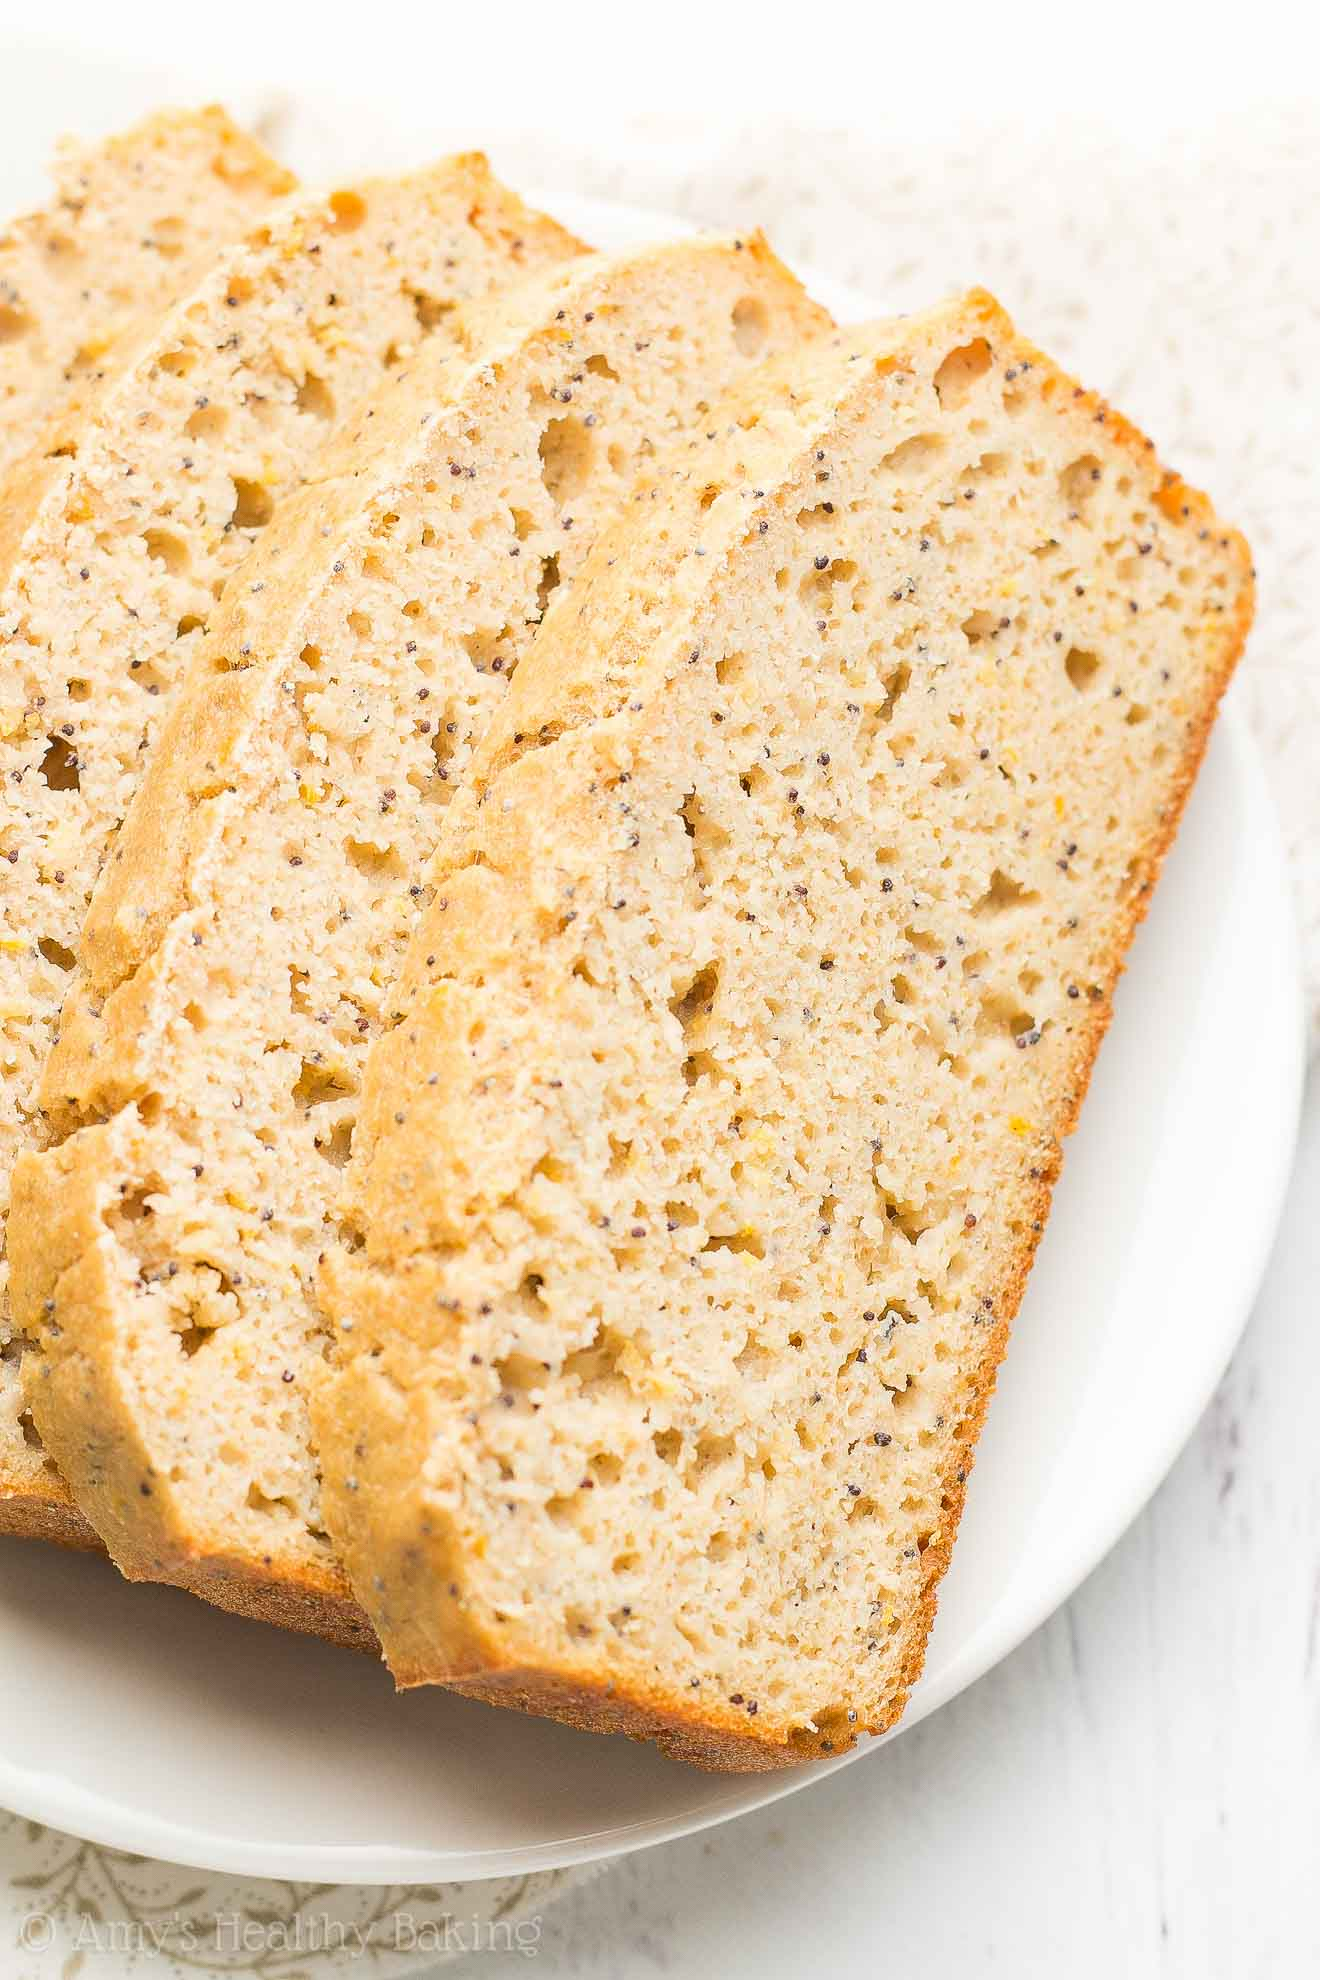 {HEALTHY!} Greek Yogurt Lemon Poppy Seed Pound Cake -- only 127 calories! Sweet, tender & bursting with bright citrus flavor! The BEST lemon cake I've ever had!